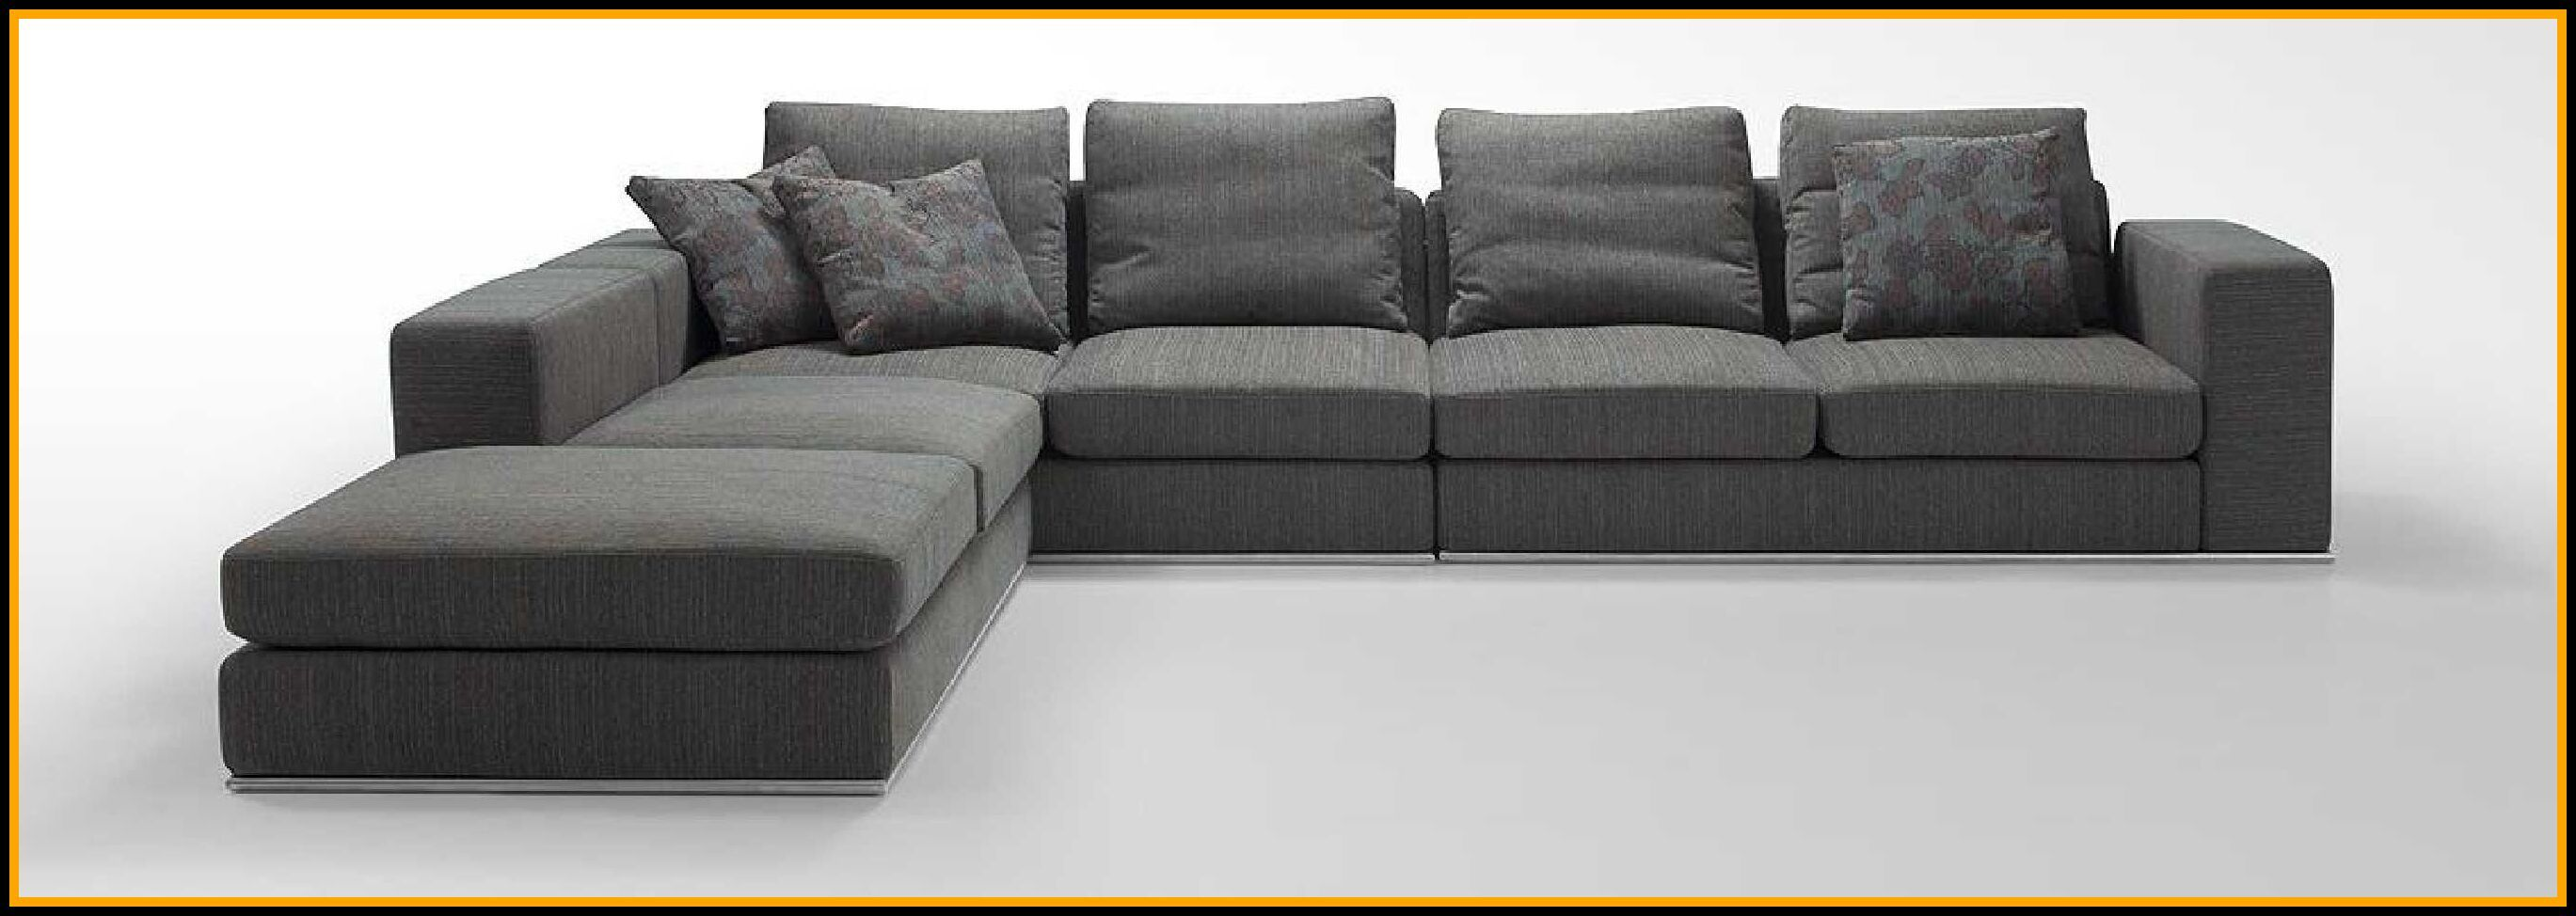 41 Reference Of Grey Sectional Couch Cheap In 2020 Grey Sectional Sofa L Shaped Sofa Bed Fabric Sectional Sofas